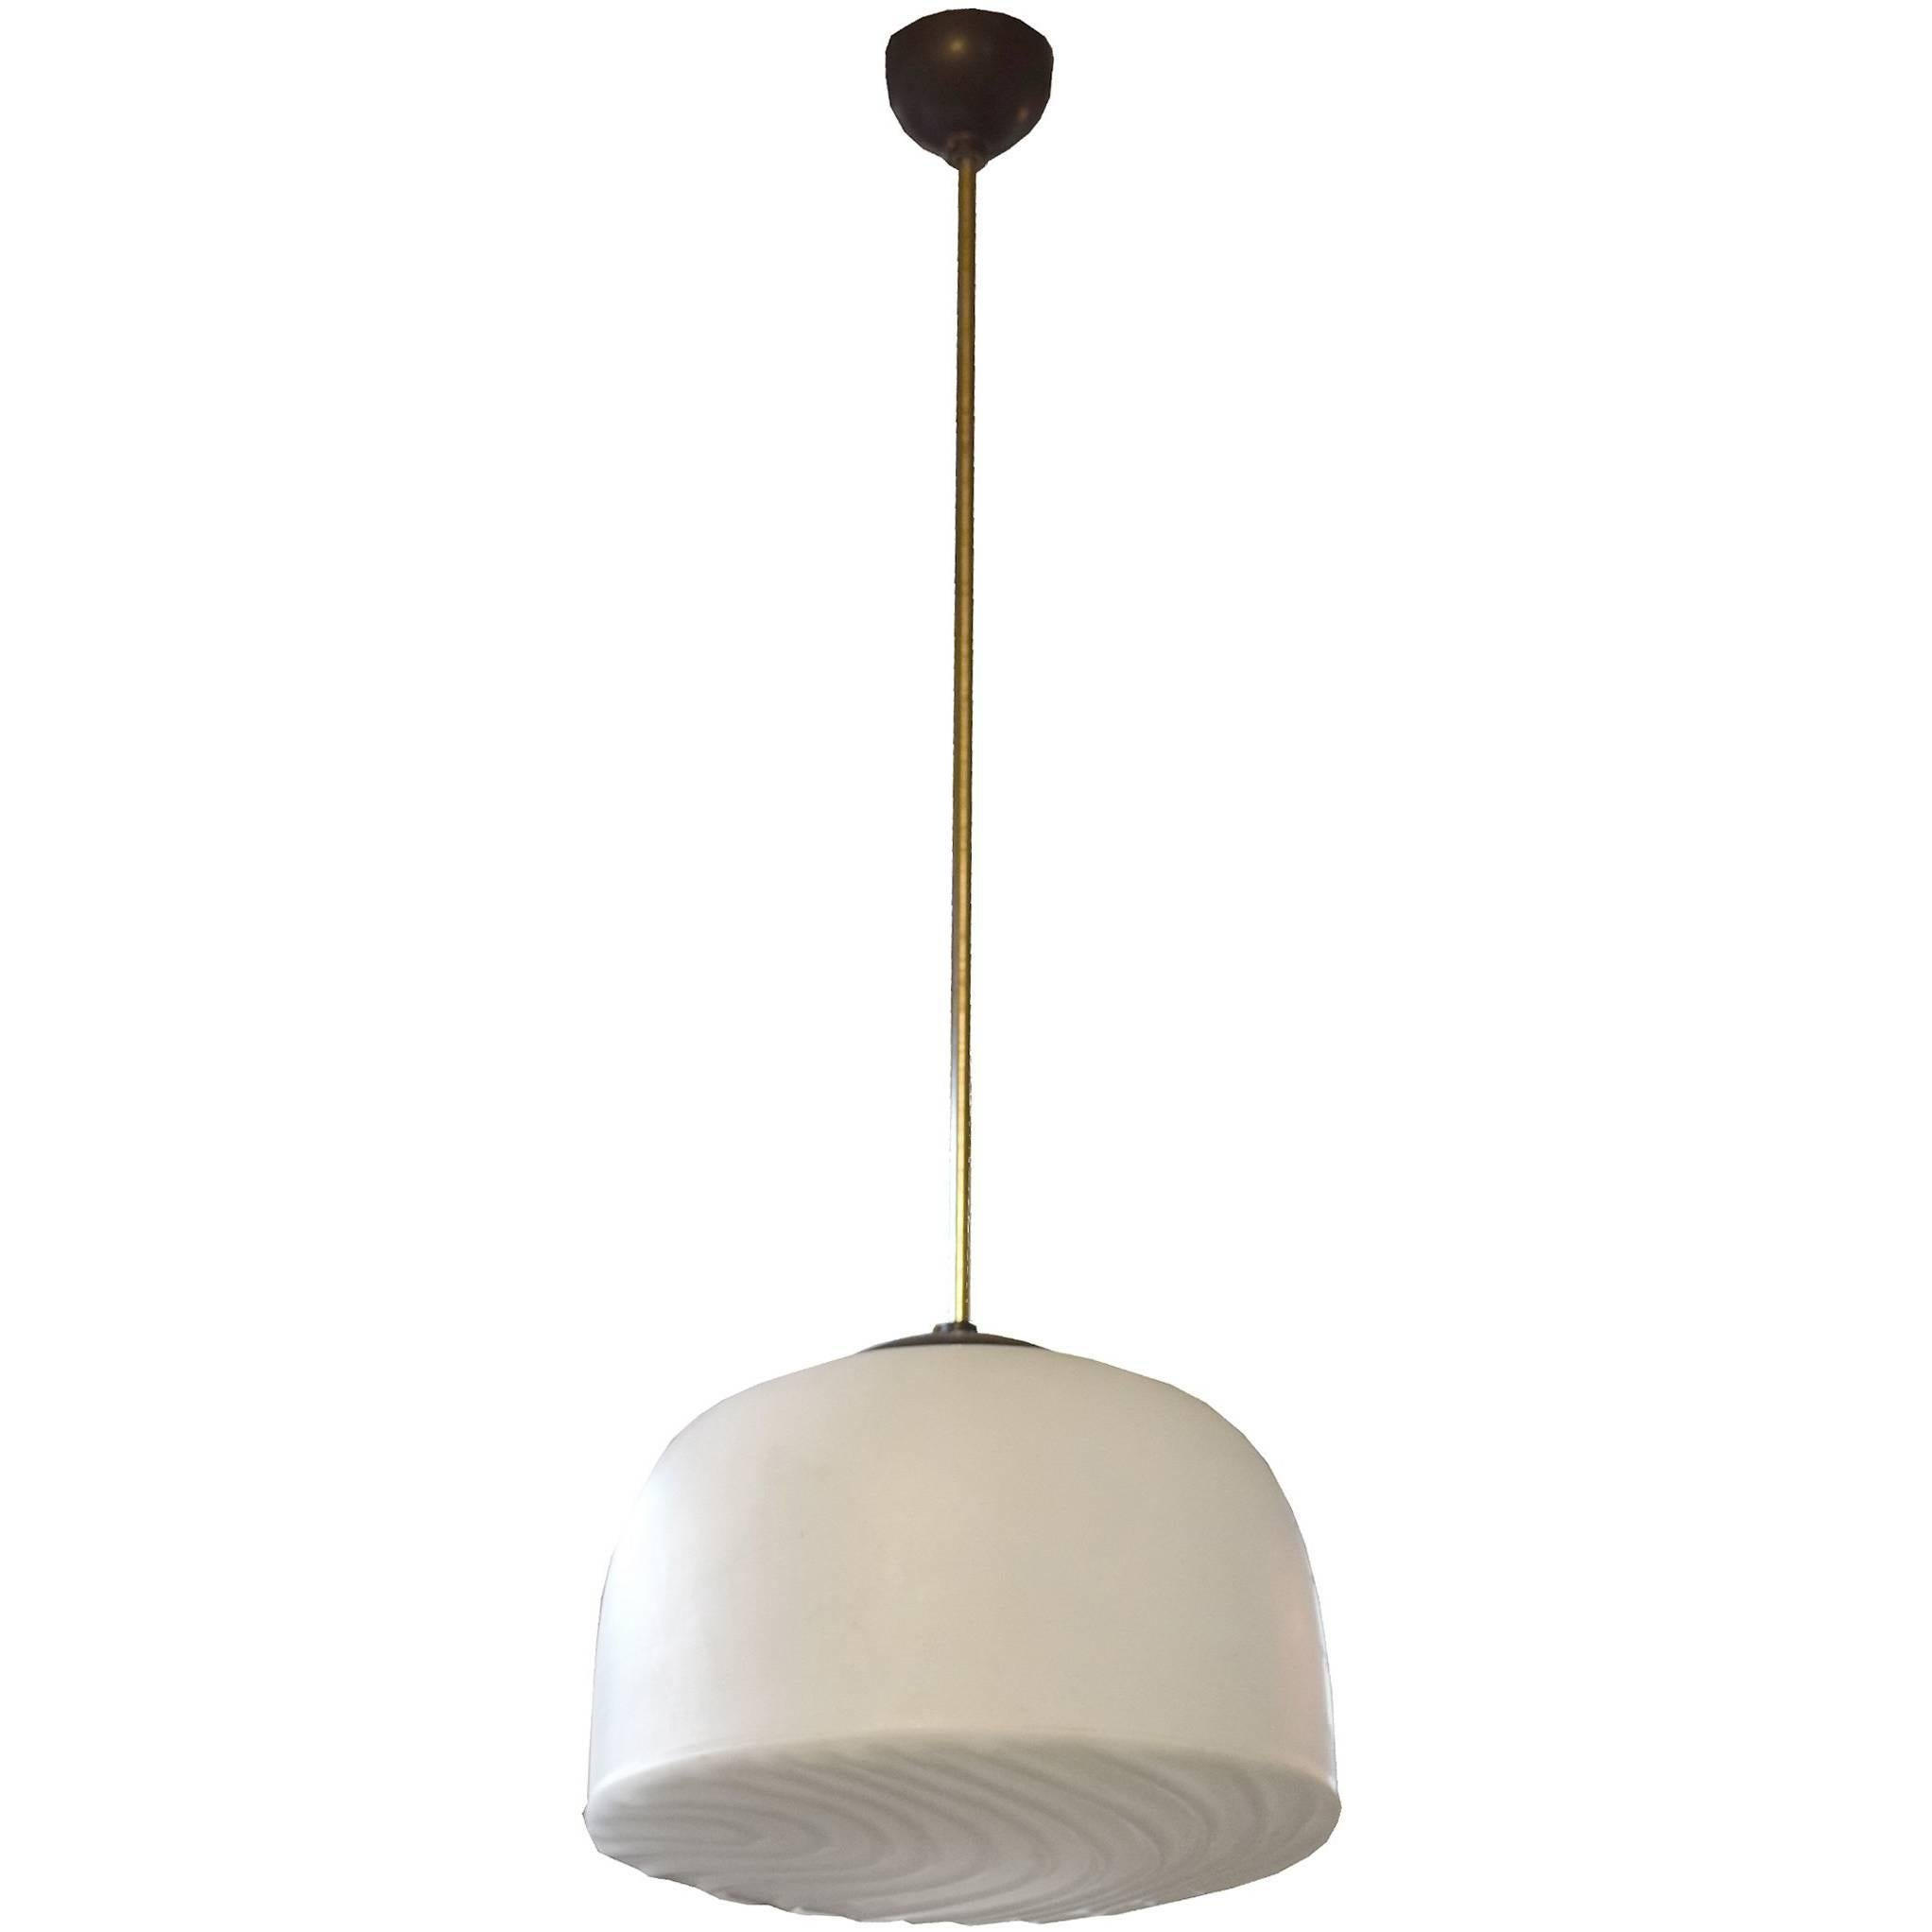 Moooi Random Led Light Fixture In White, Sizes Small, Medium